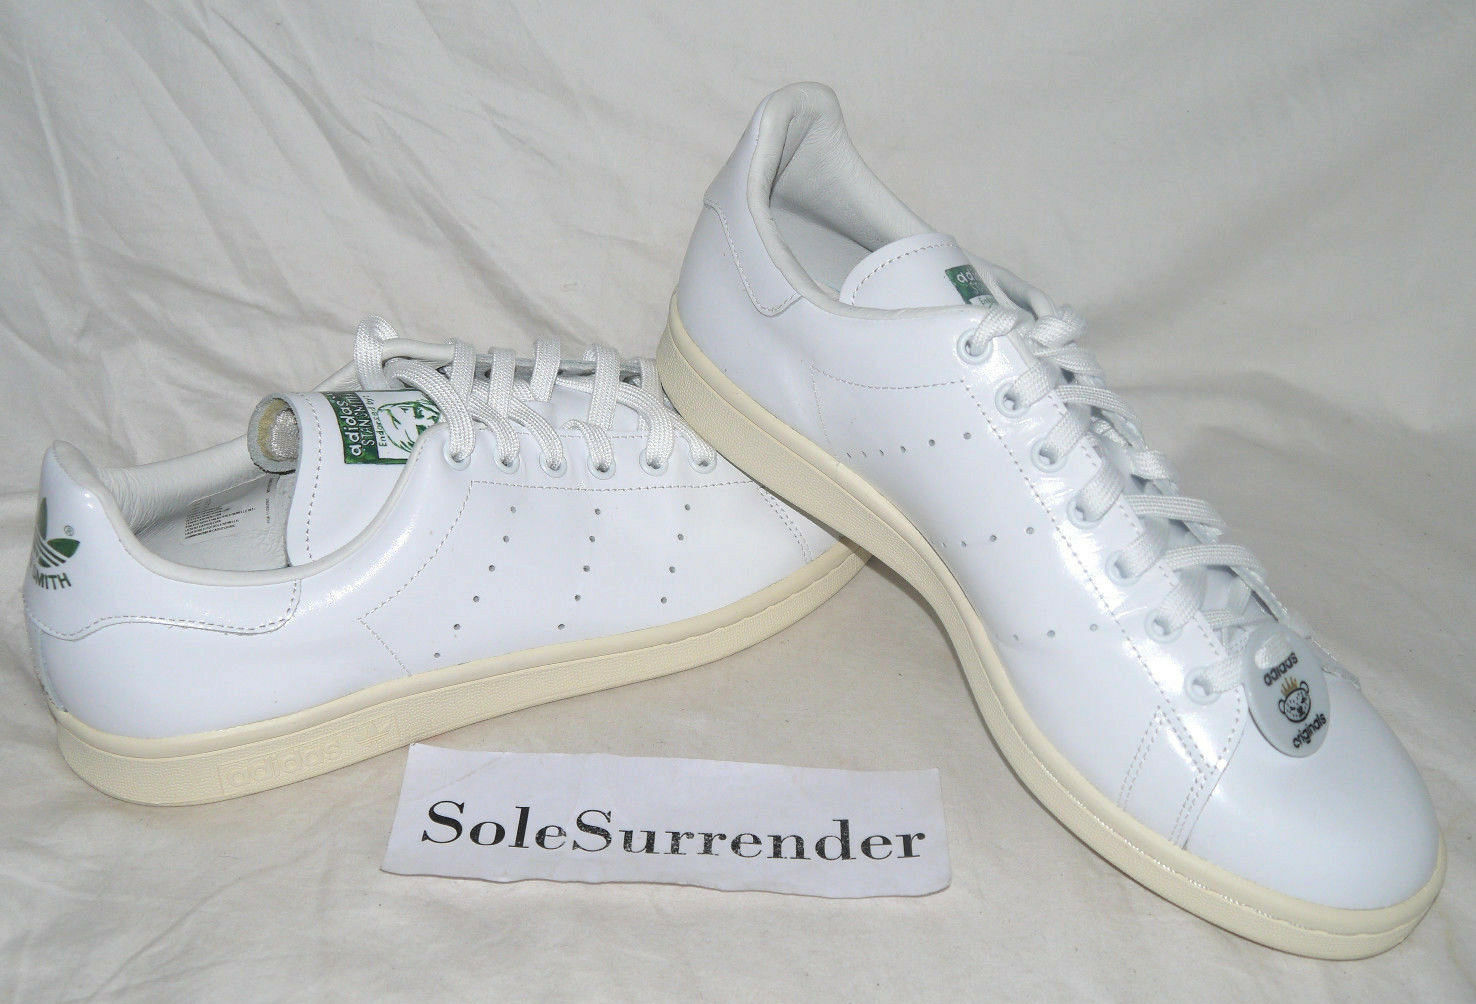 premium selection 30bc8 9e69c good Adidas Stan Smith Nigo - SIZE 11 - NEW - S79591 ...